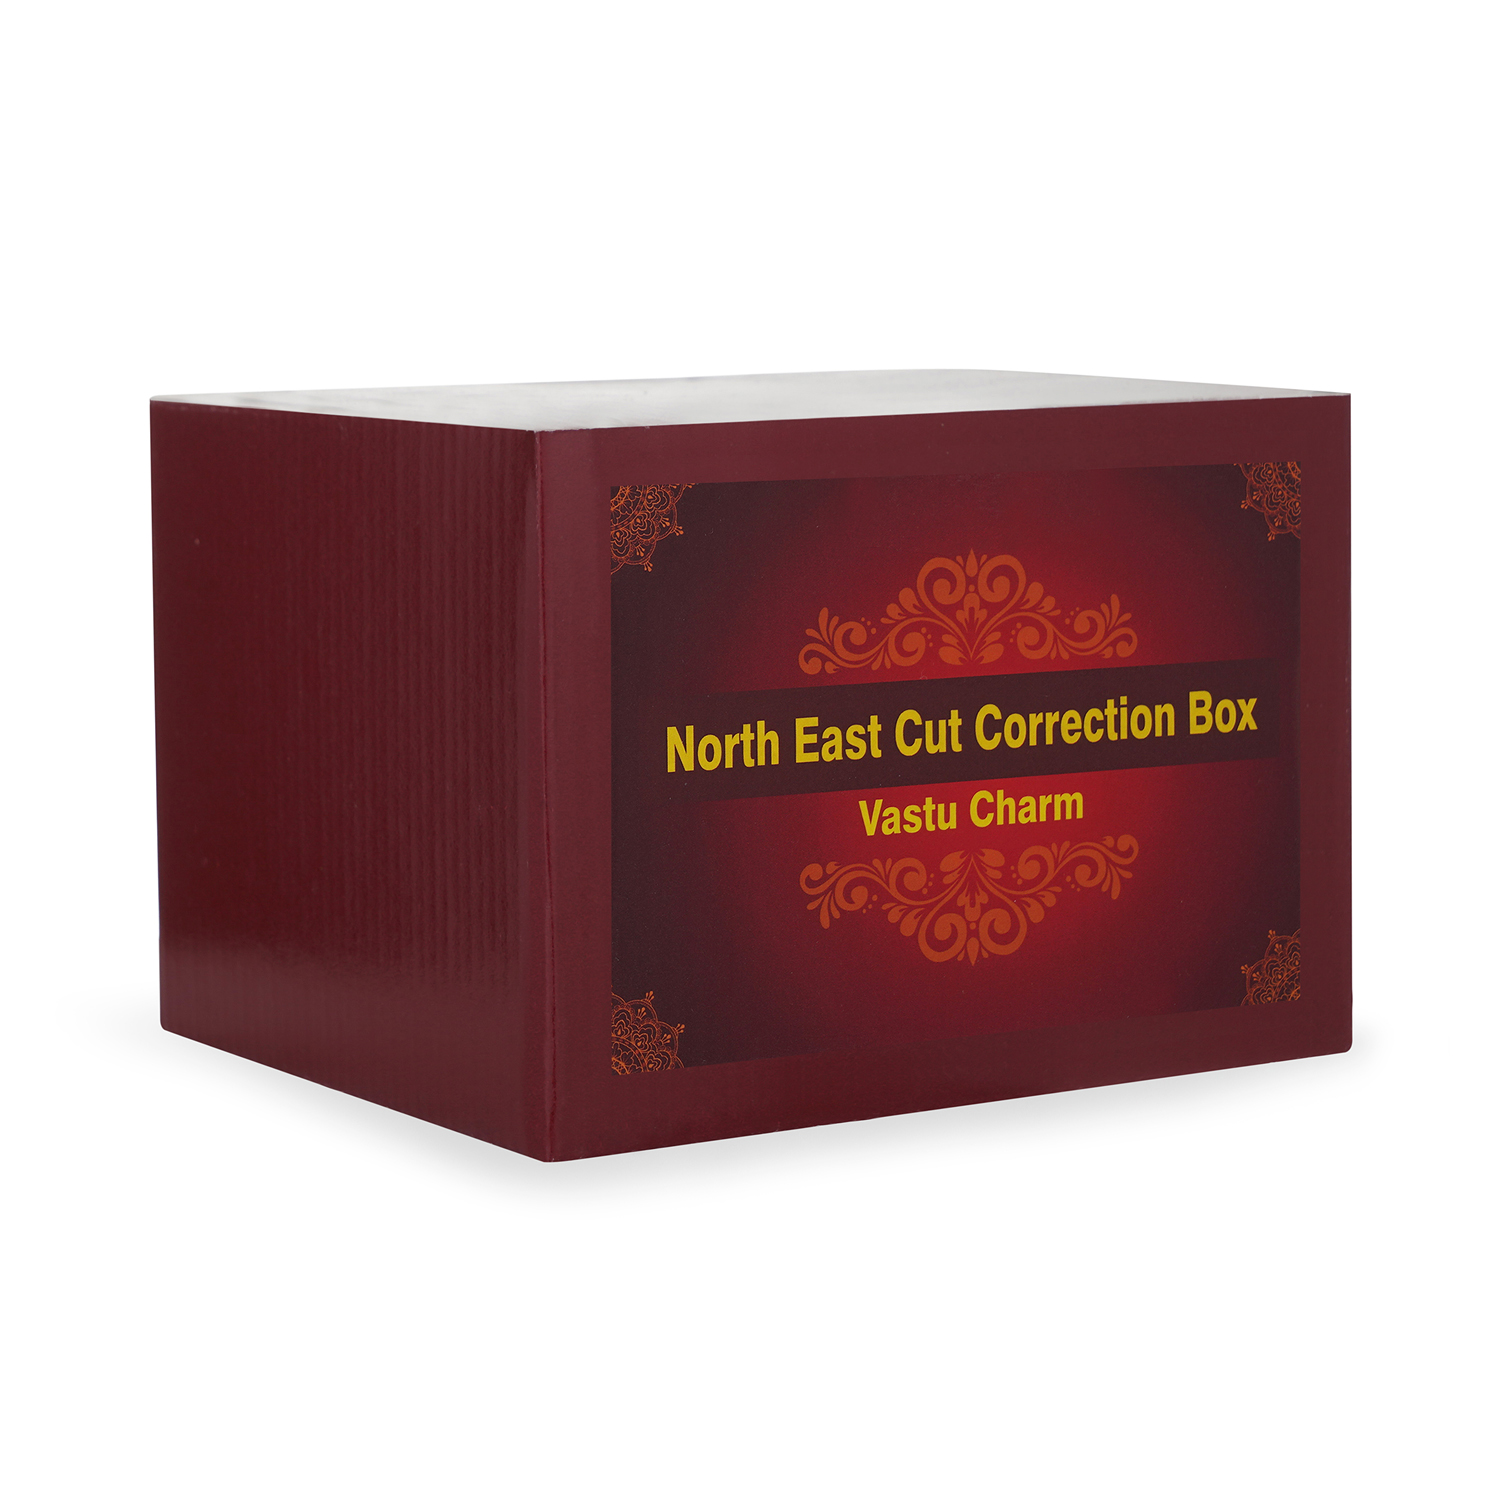 North East Cut Correction Box